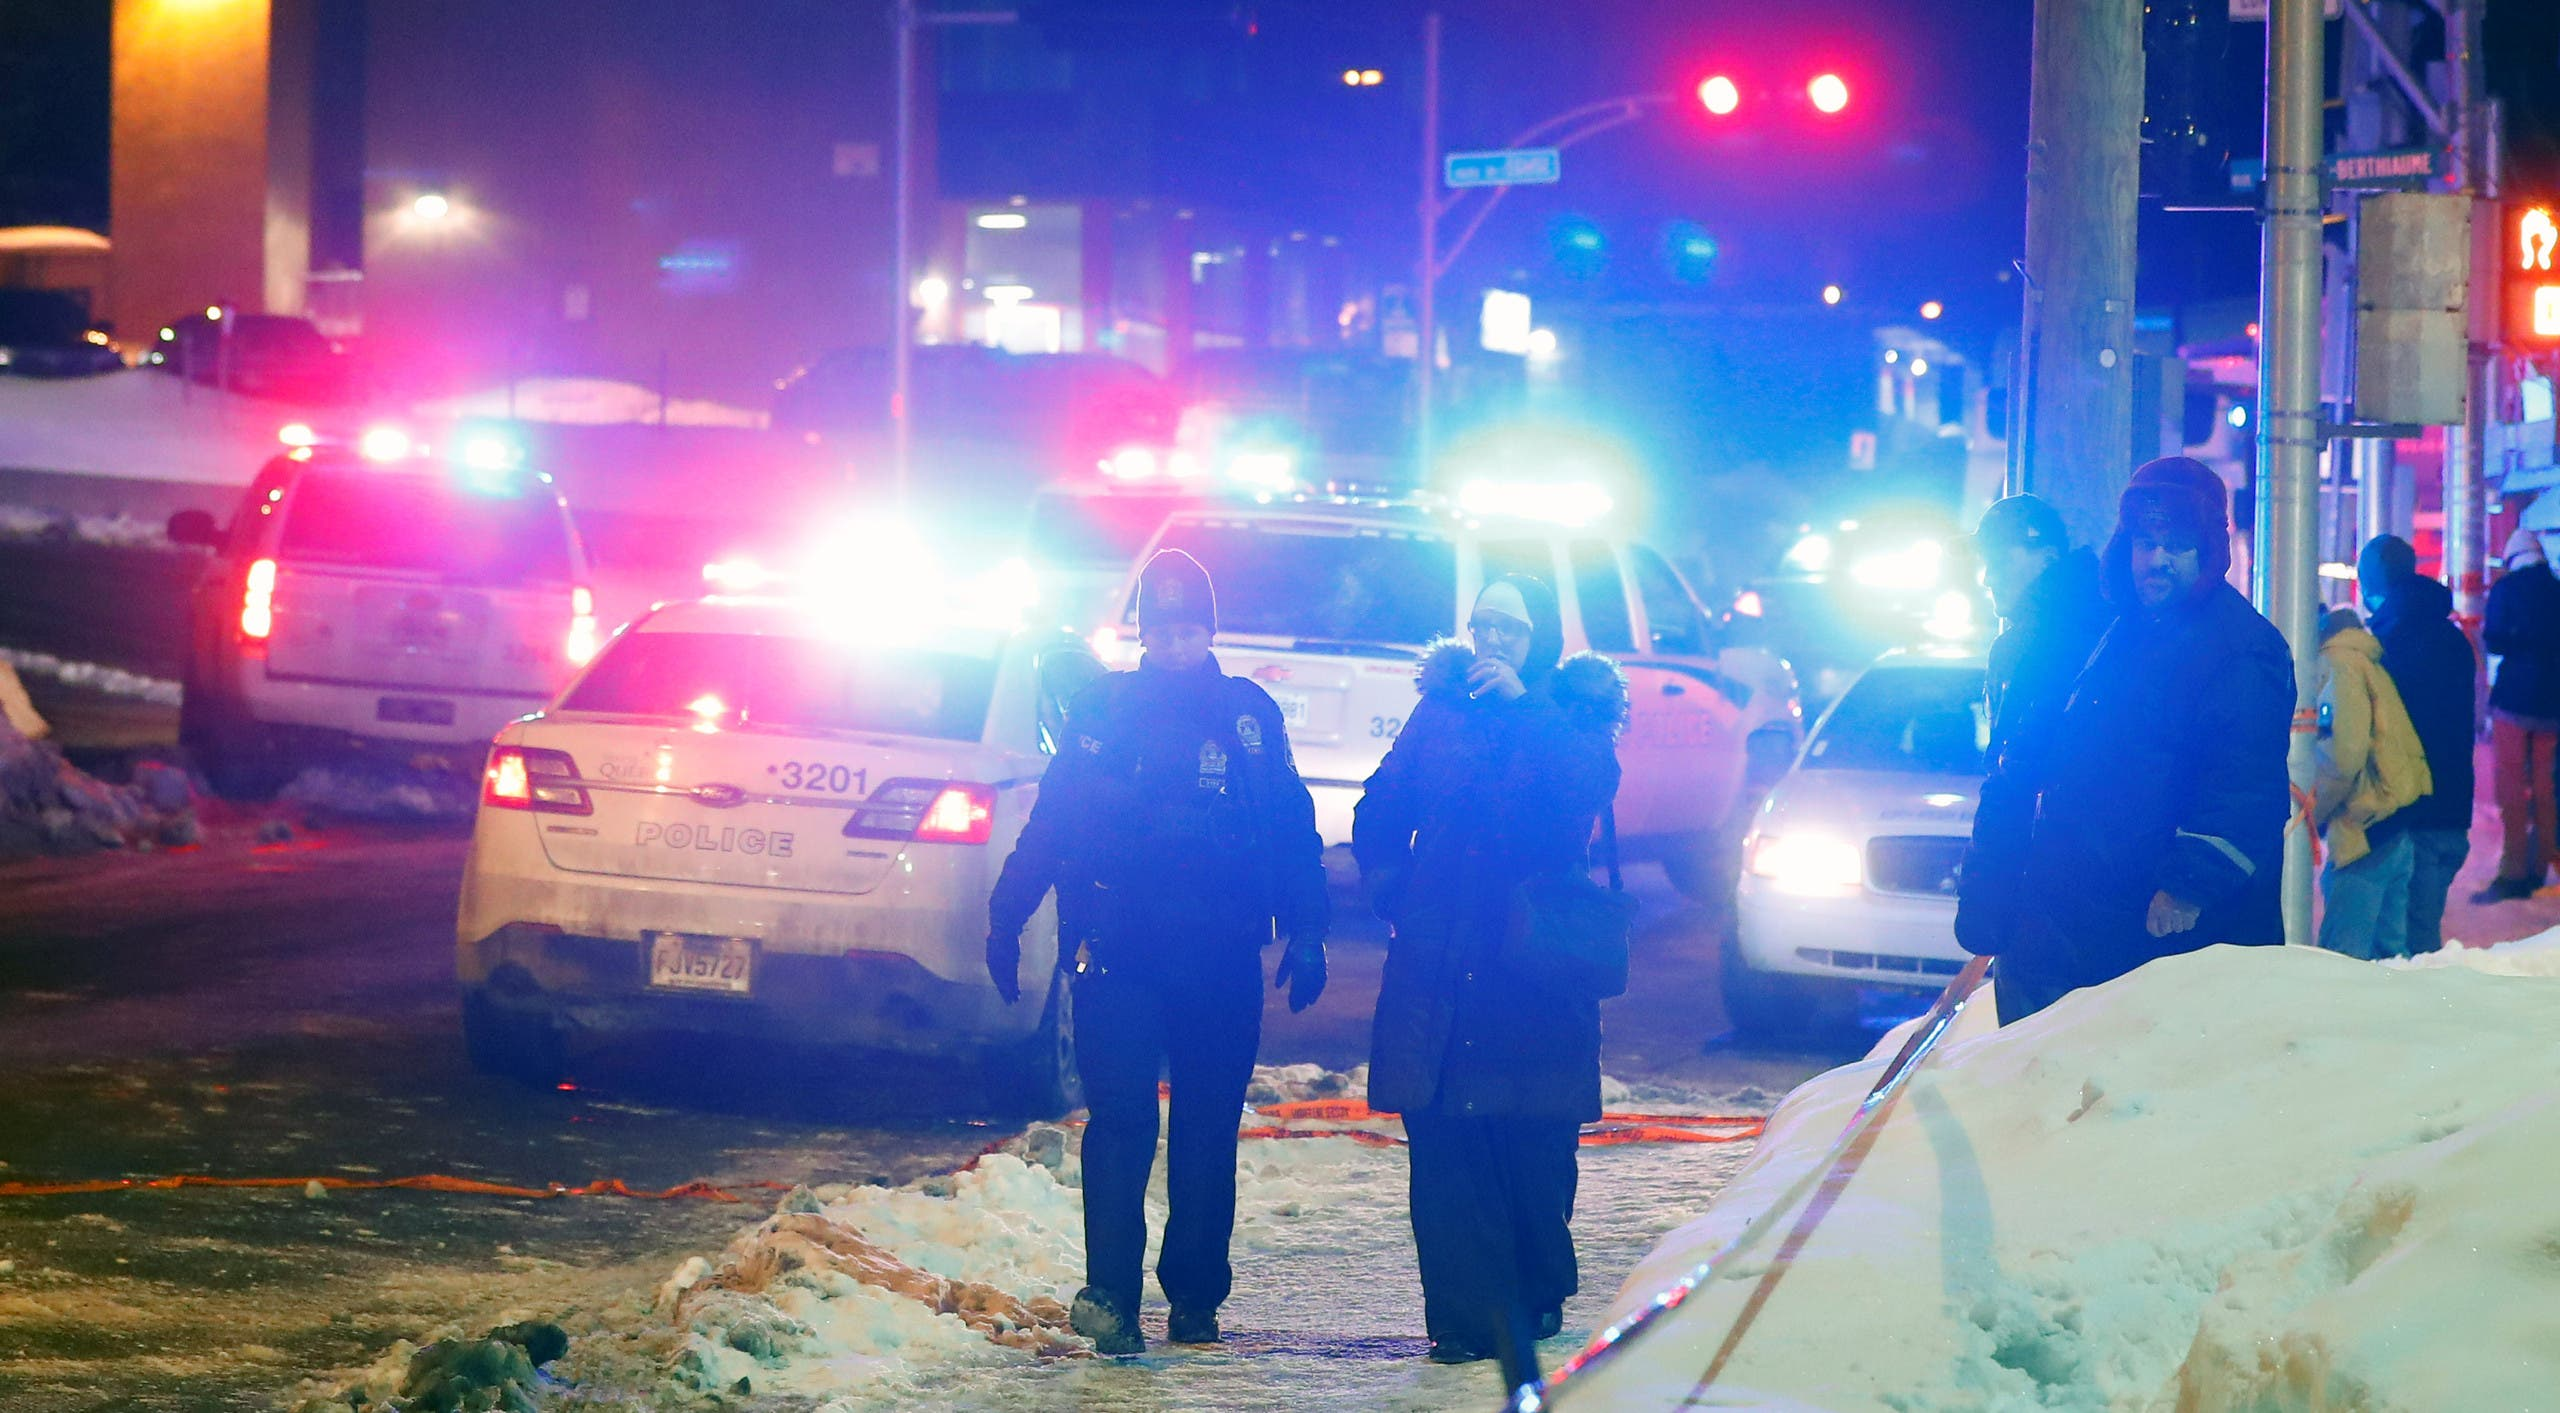 An ambulance is parked at the scene of a fatal shooting at the Quebec Islamic Cultural Centre in Quebec City. (Reuters)